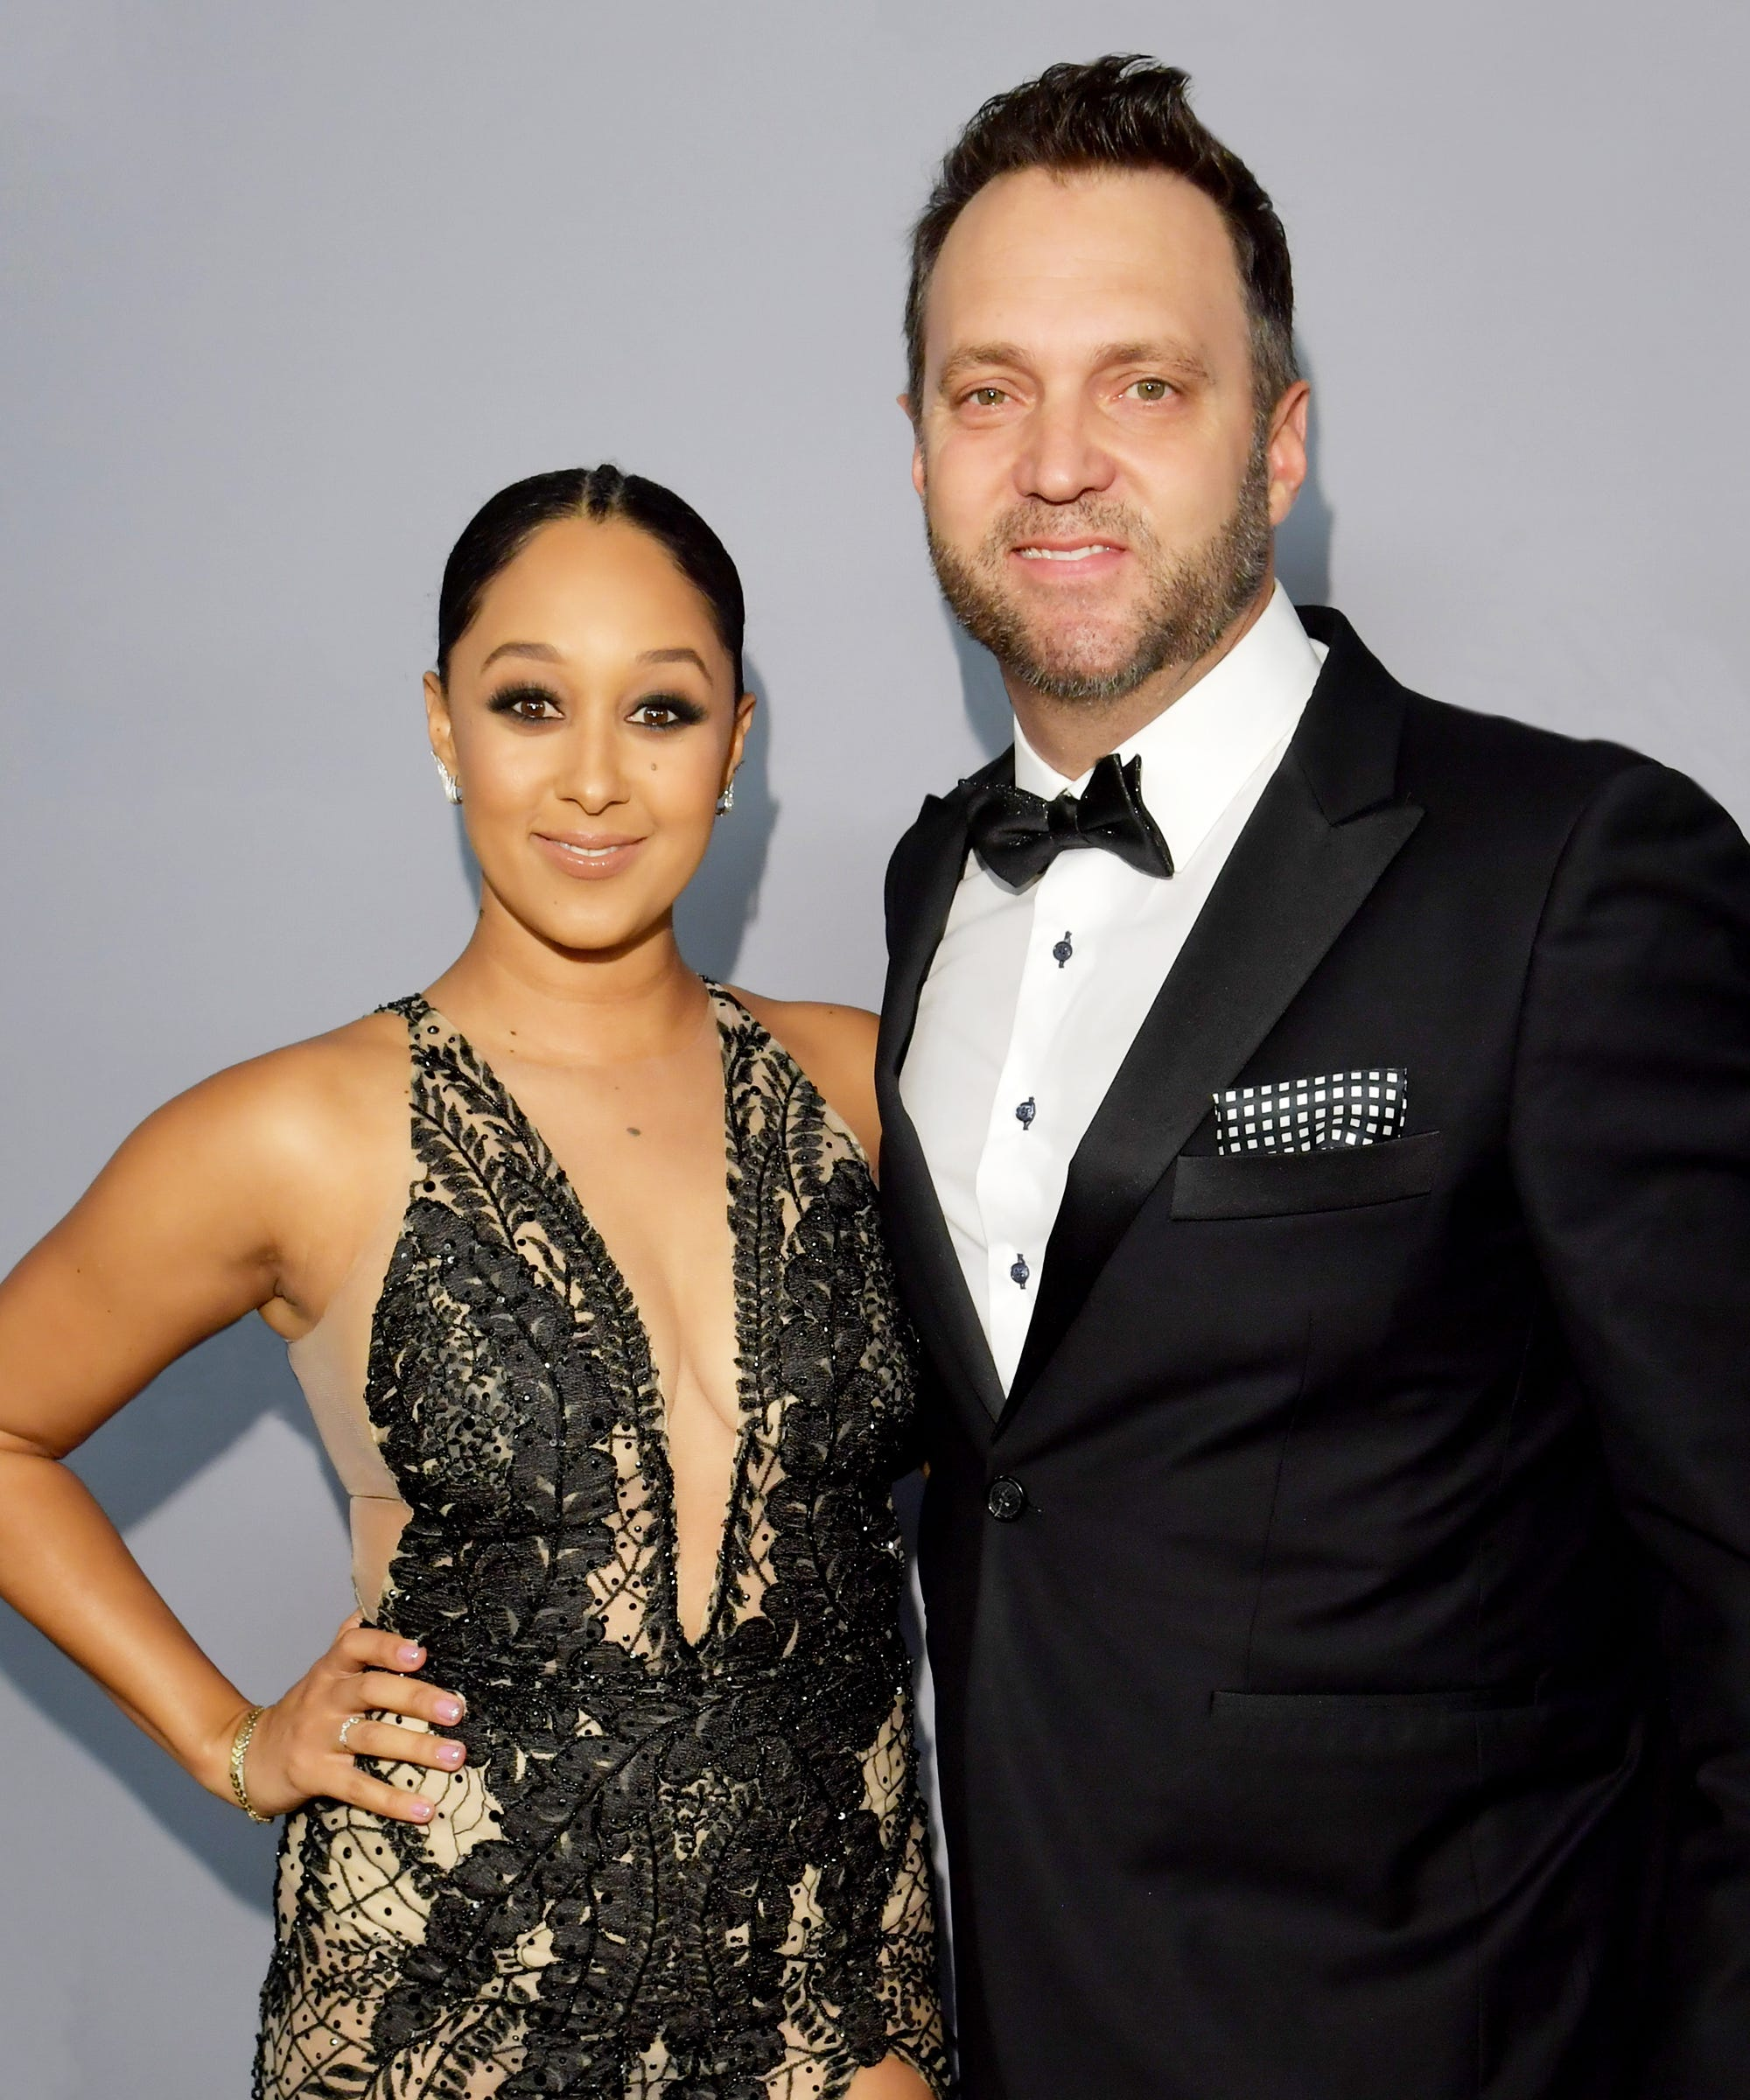 Young Tamera Mowry nudes (11 photos), Topless, Paparazzi, Instagram, legs 2020